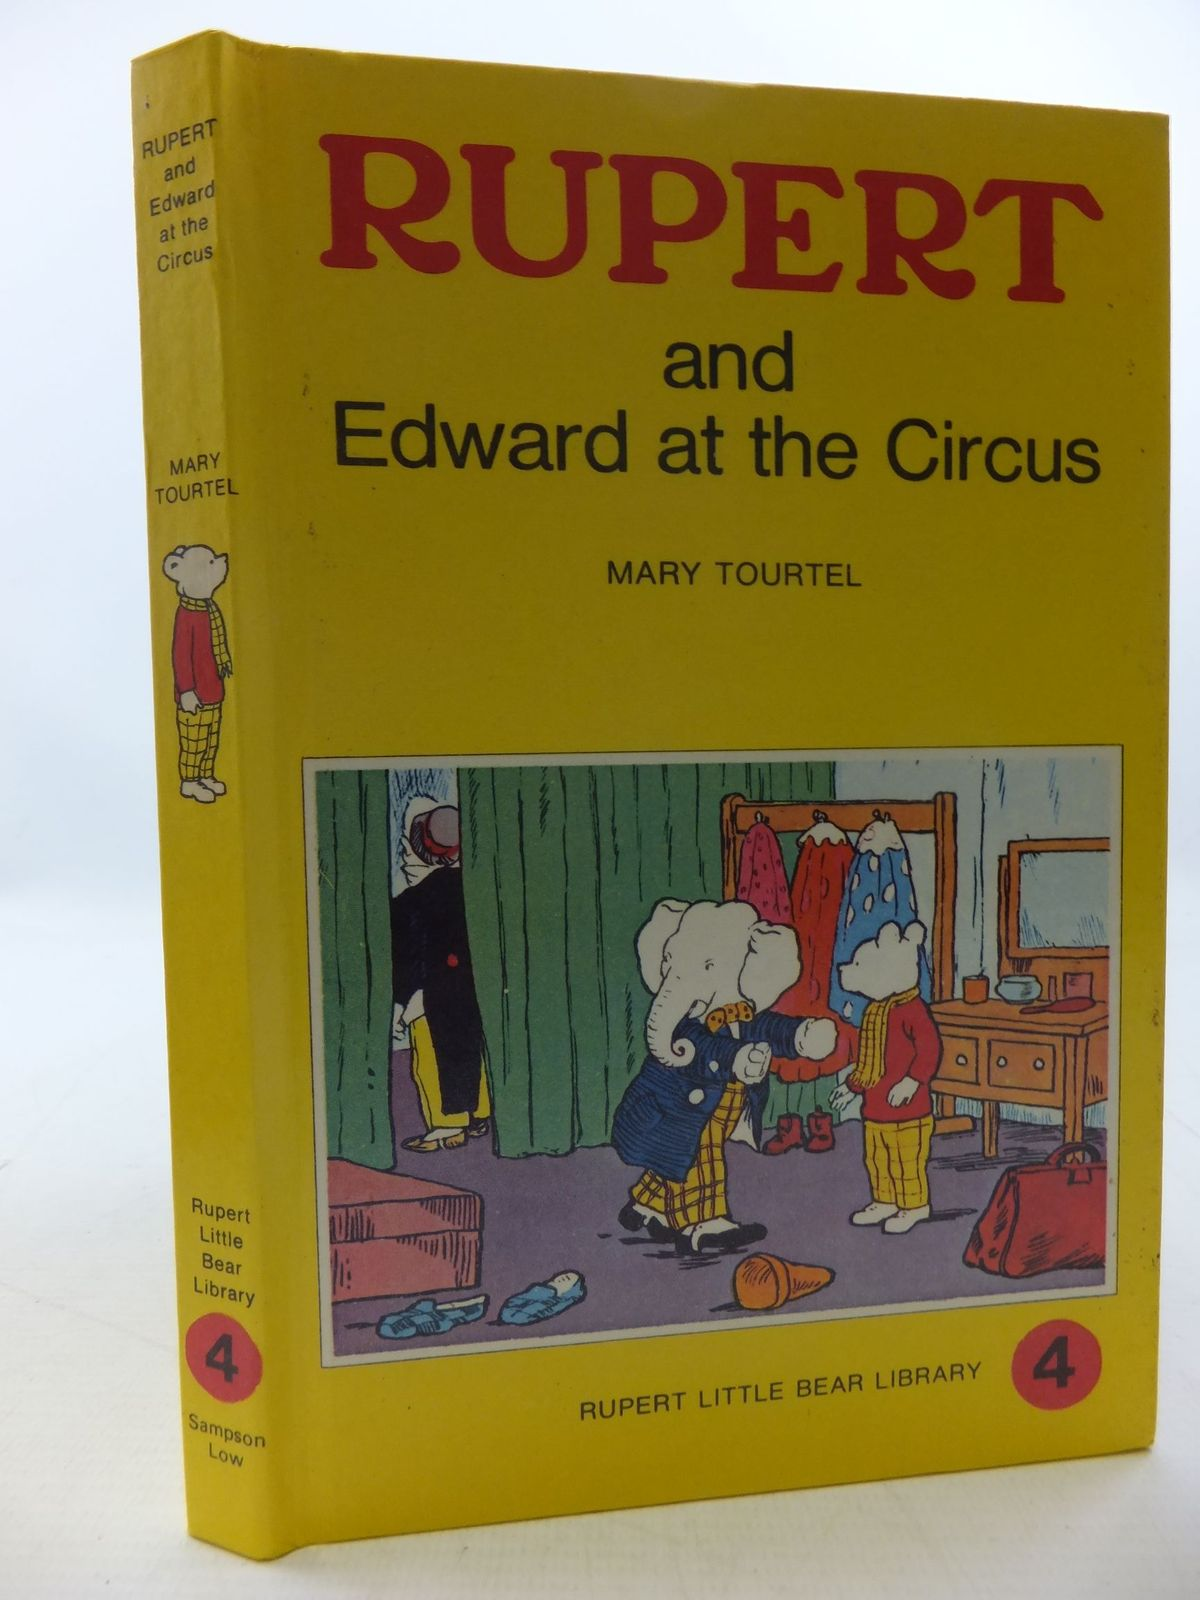 Photo of RUPERT AND EDWARD AT THE CIRCUS - RUPERT LITTLE BEAR LIBRARY No. 4 (WOOLWORTH) written by Tourtel, Mary illustrated by Tourtel, Mary published by Sampson Low, Marston & Co. (STOCK CODE: 2112761)  for sale by Stella & Rose's Books